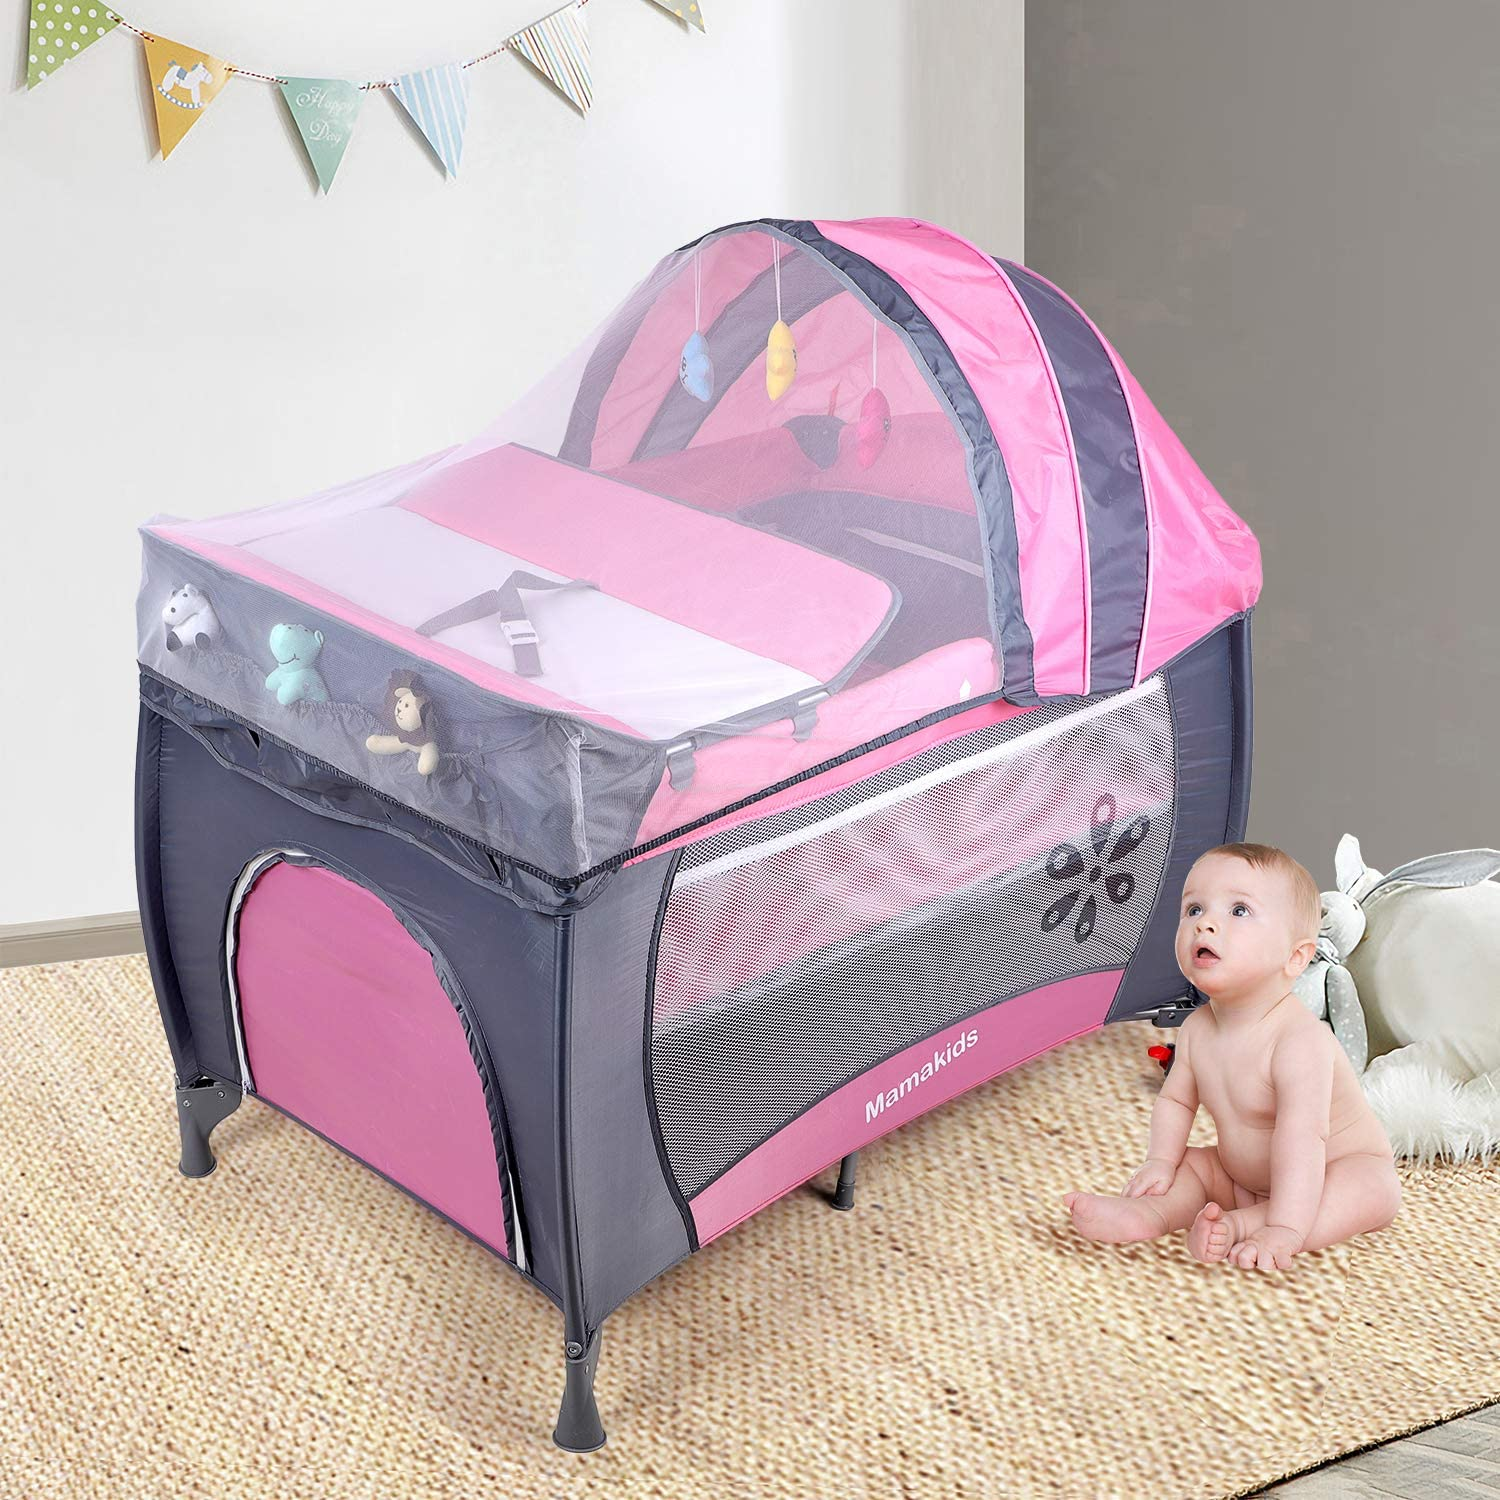 Wheels and Brake Portable Nursery Center for Boys and Girls with Carry Bag Foldable Baby Crib Portable Playard with Changing Table Infant Bassinet Bed Blue Travel Cot